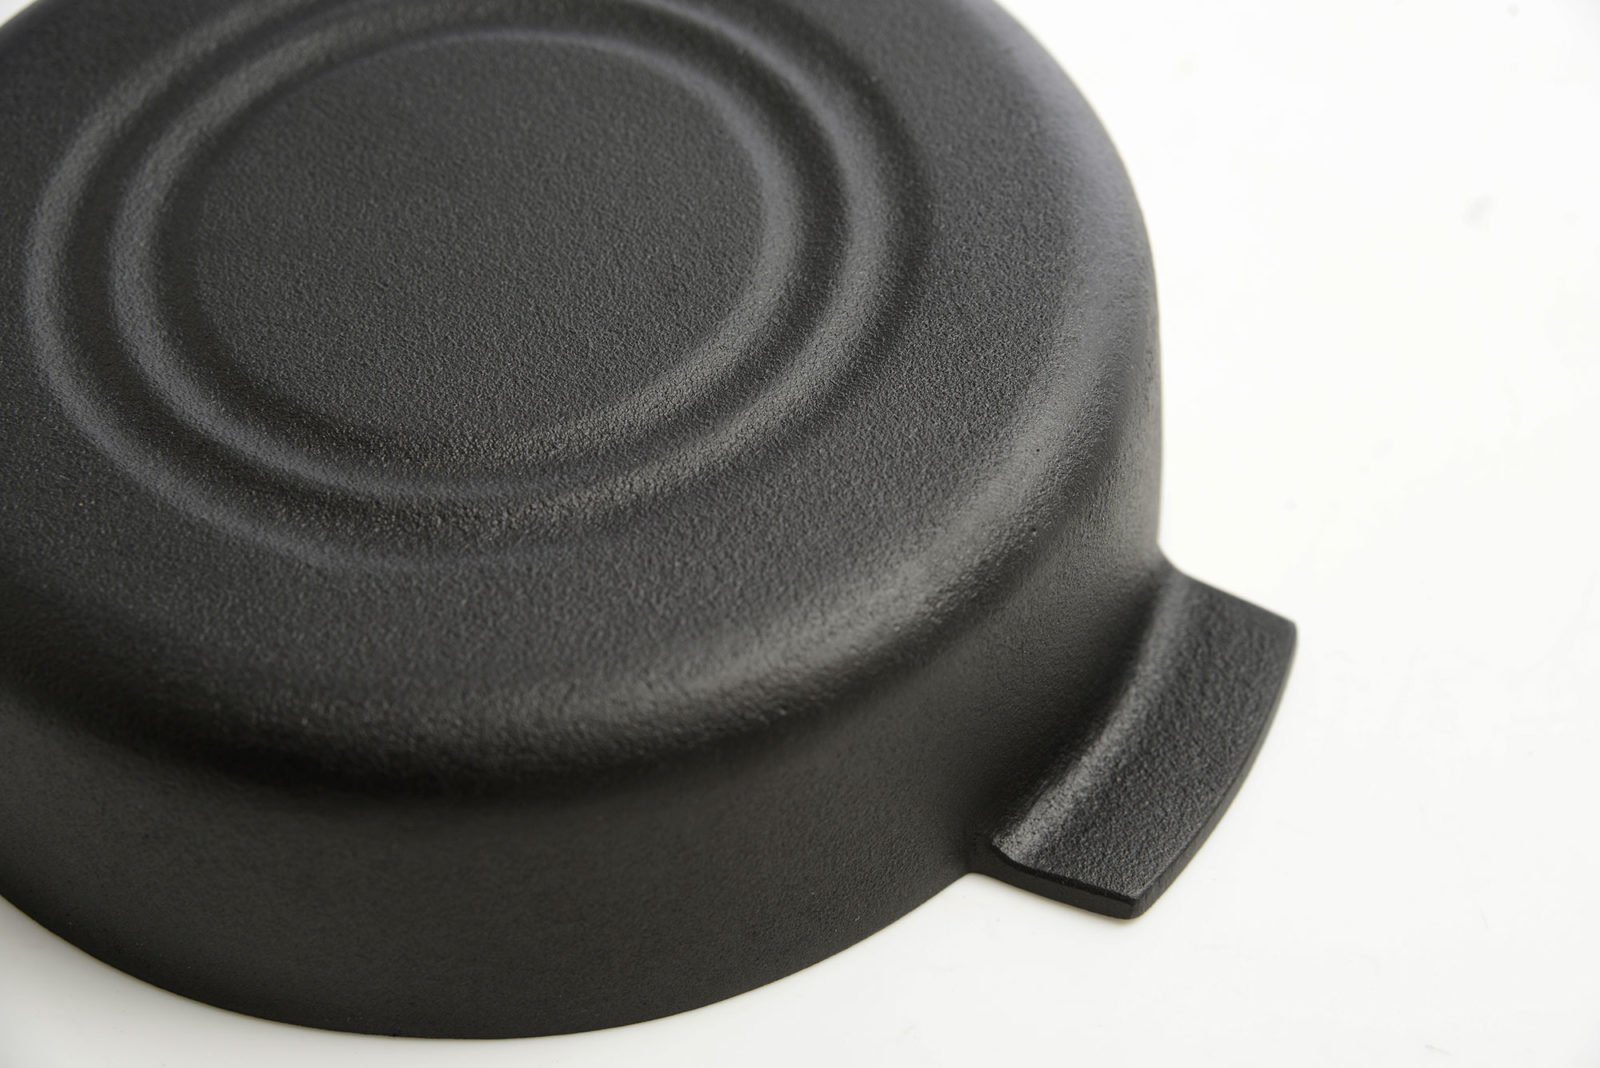 Nambu Tekki Cast Iron Baker Pan, Small-30392